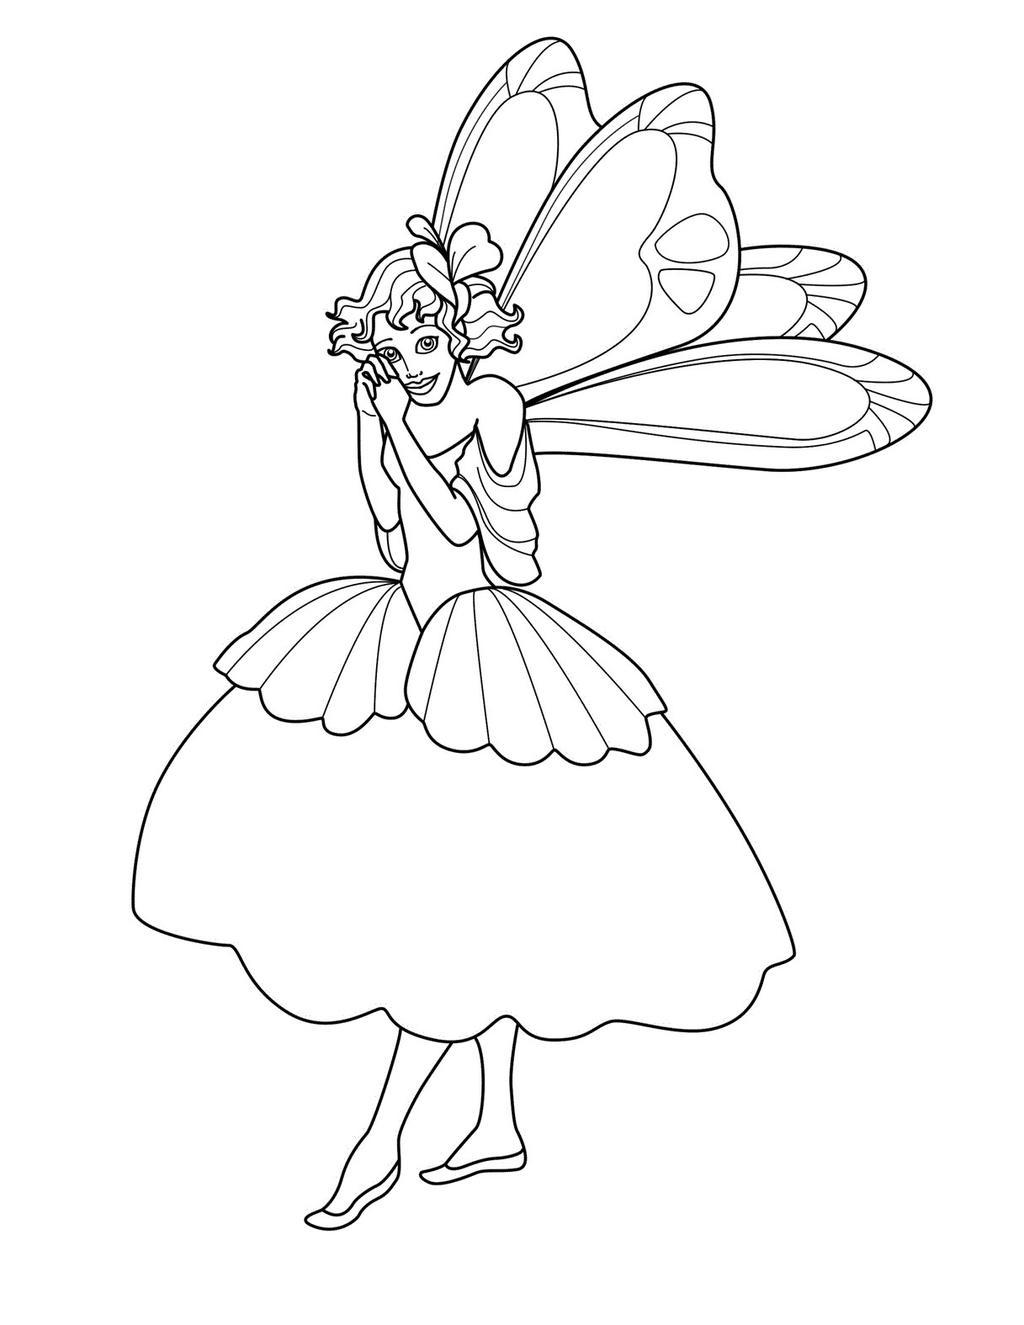 rainbow magic coloring pages fairies awesome for toddlers free printable coloring pages. Black Bedroom Furniture Sets. Home Design Ideas